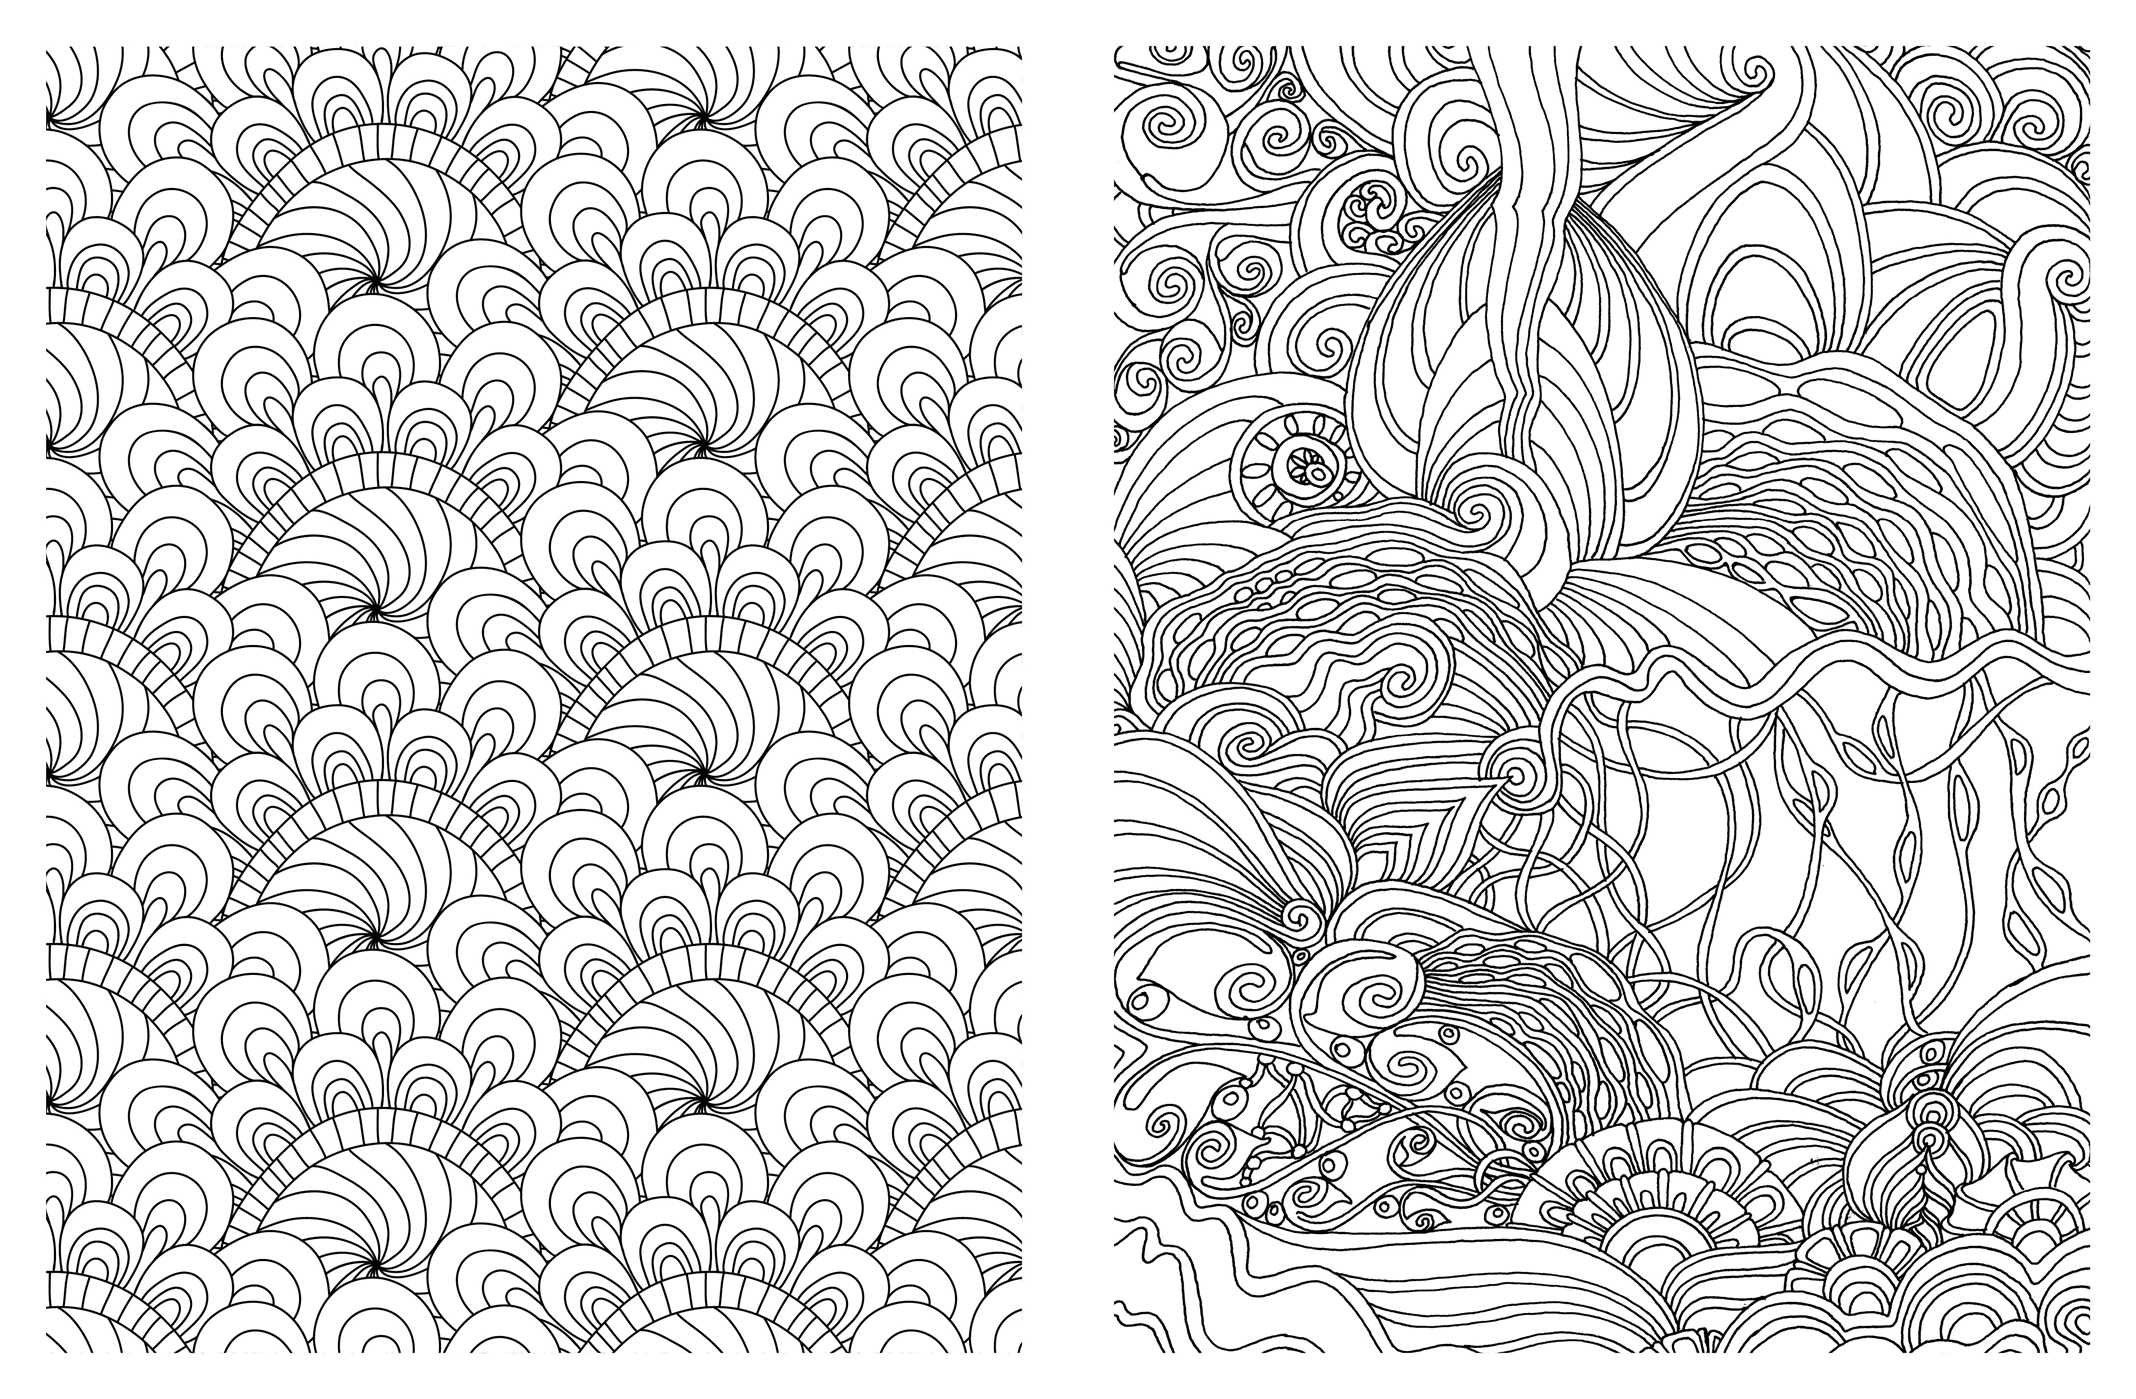 colouring books for adults in australia : Amazon Com Posh Adult Coloring Book Soothing Designs For Fun And Relaxation